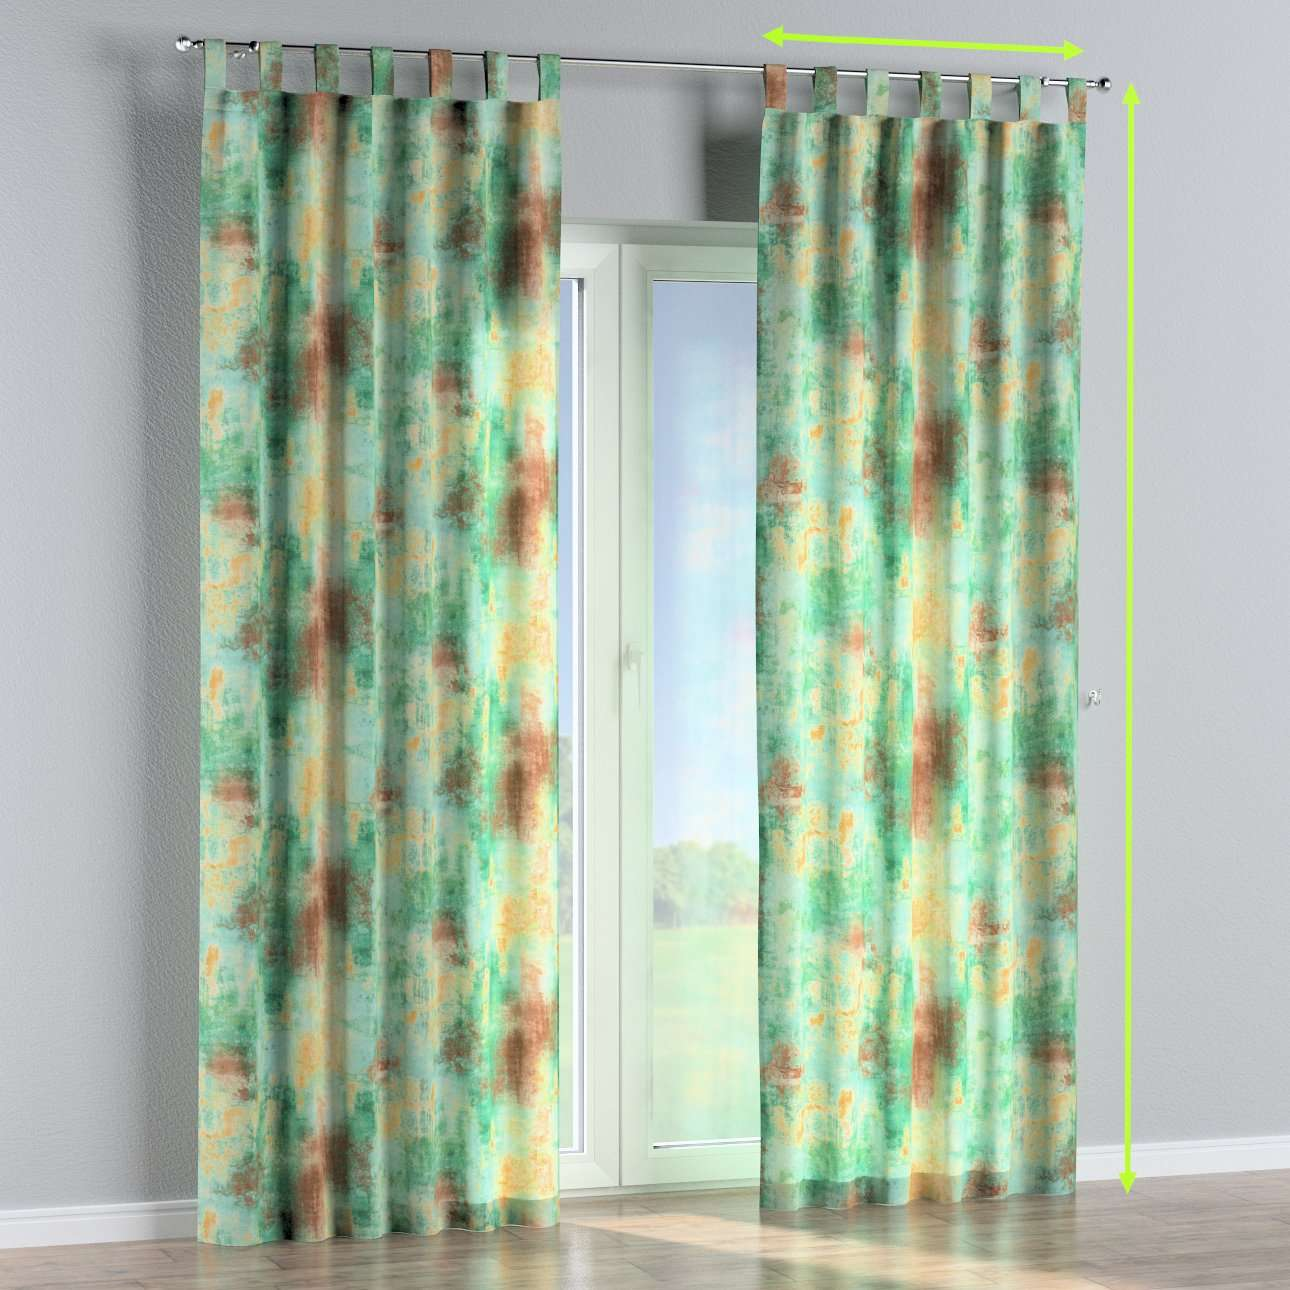 Tab top lined curtains in collection Urban Jungle, fabric: 141-22